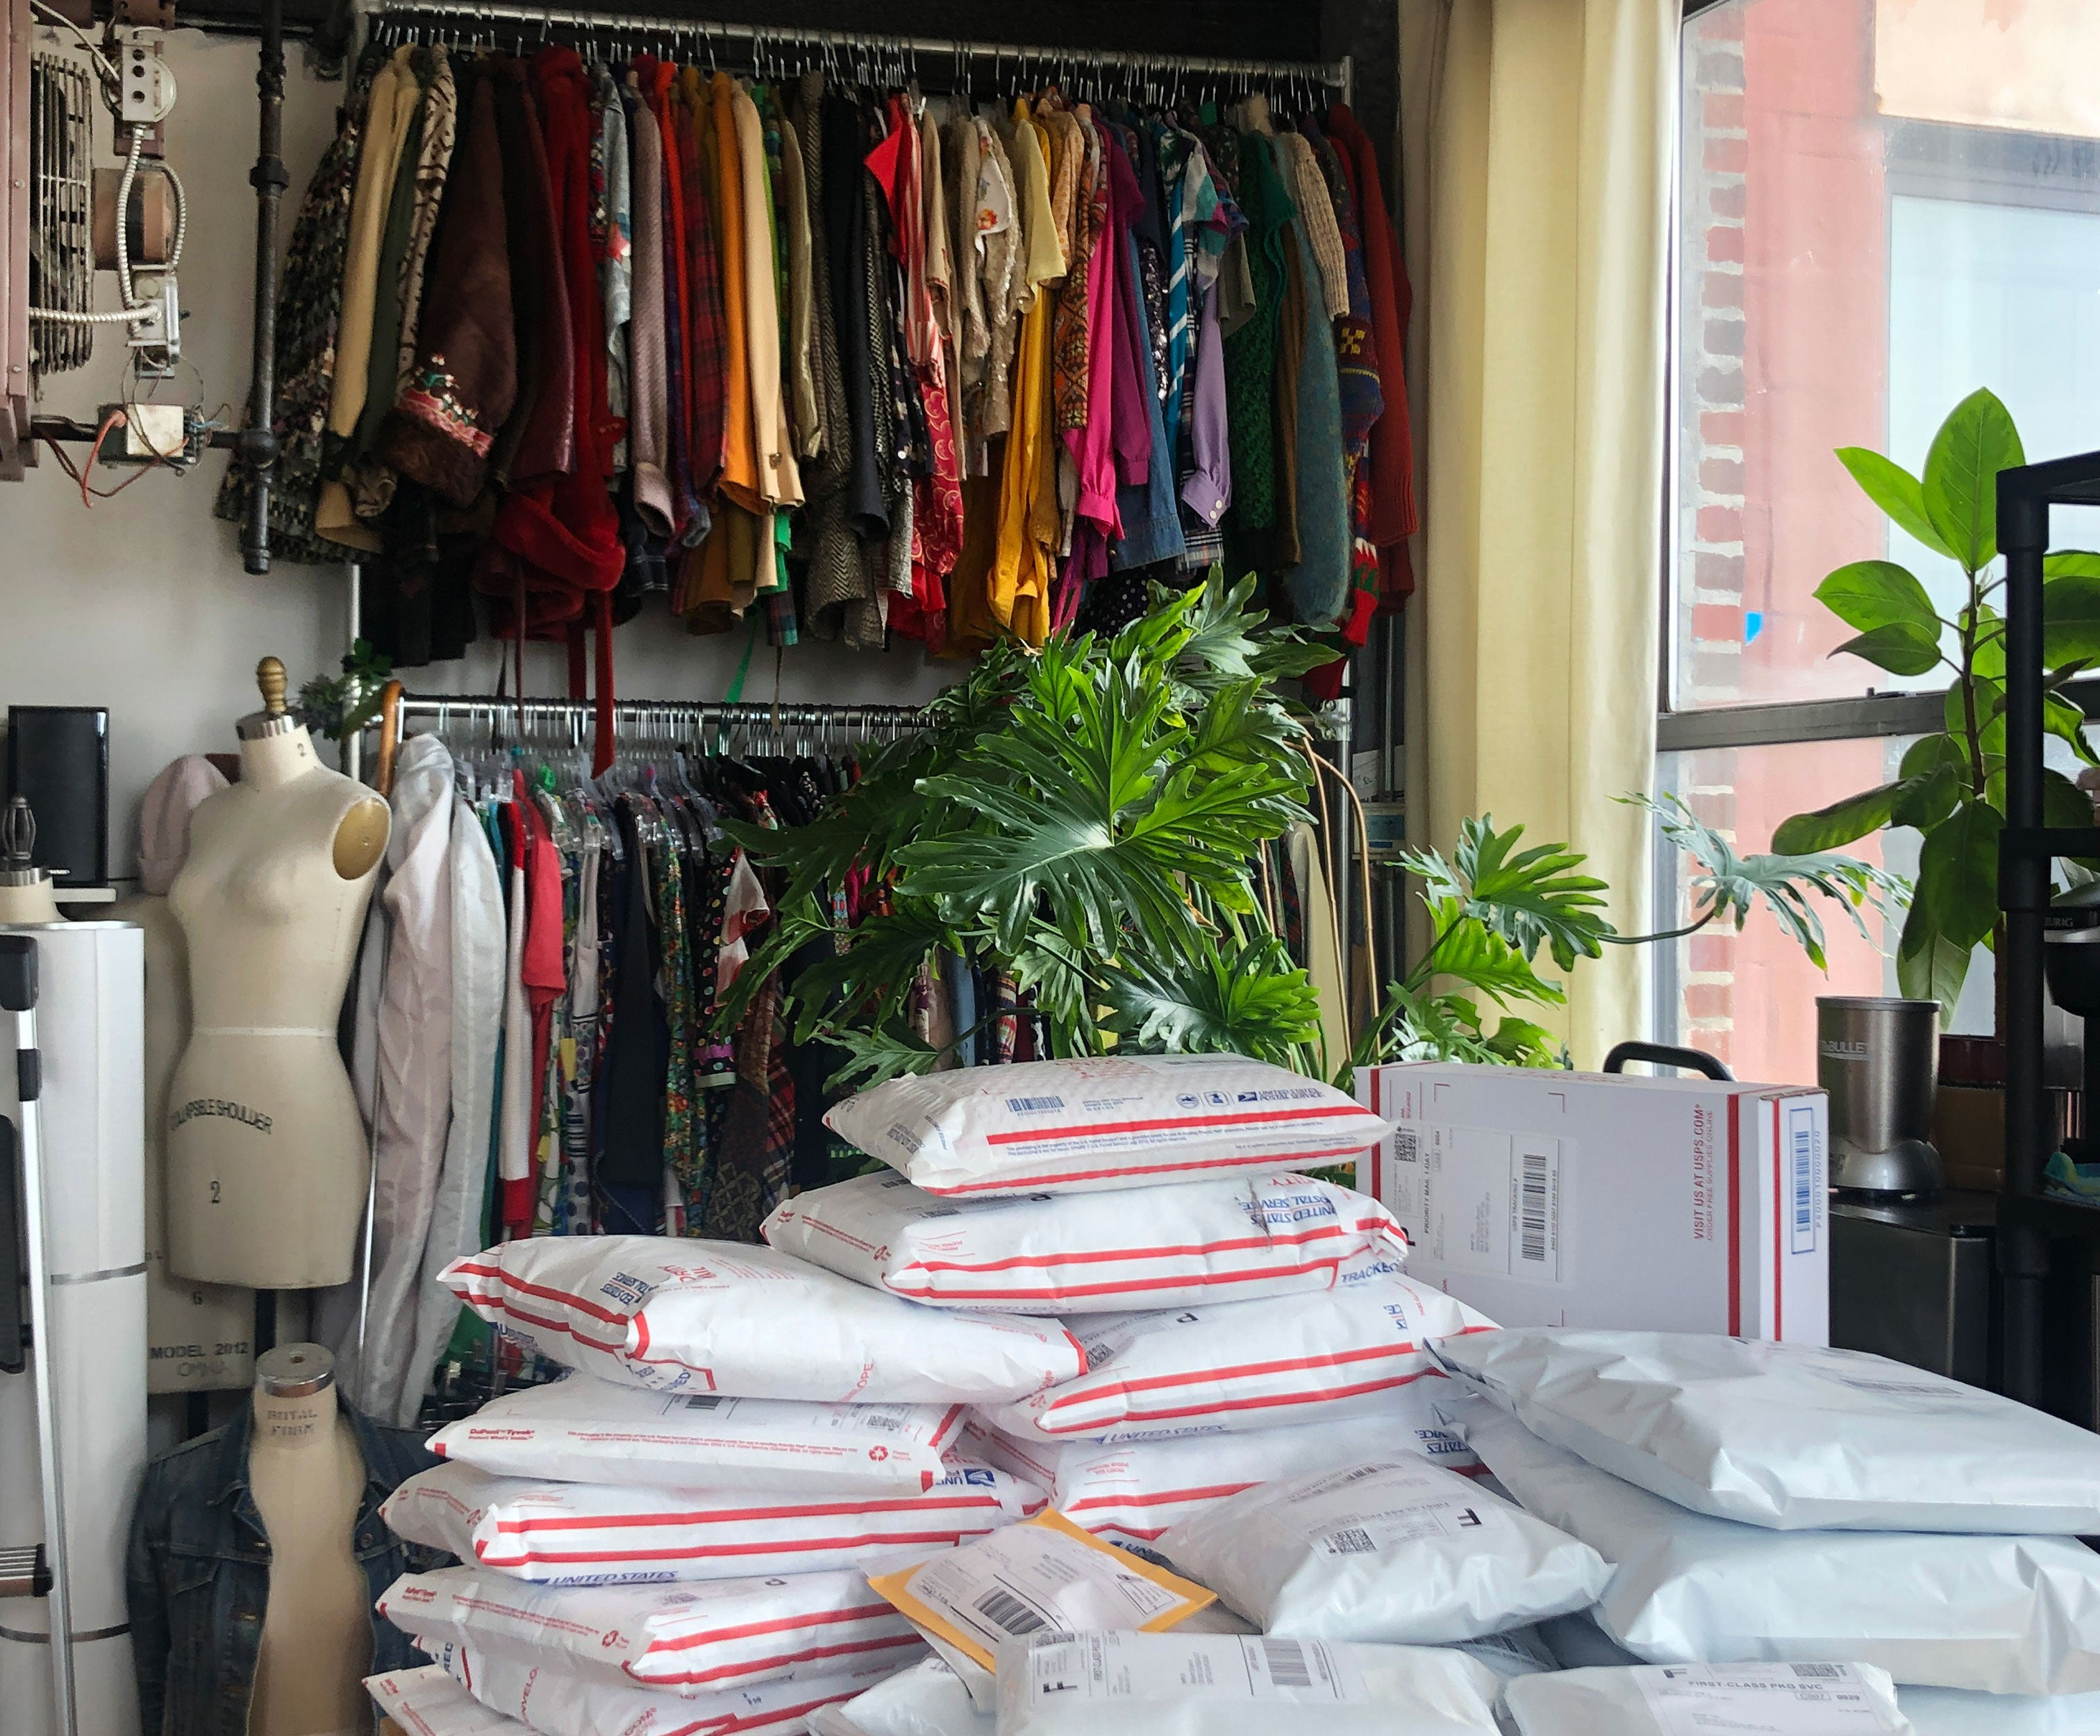 A store room filled with vintage clothing and packaged orders ready to be mailed